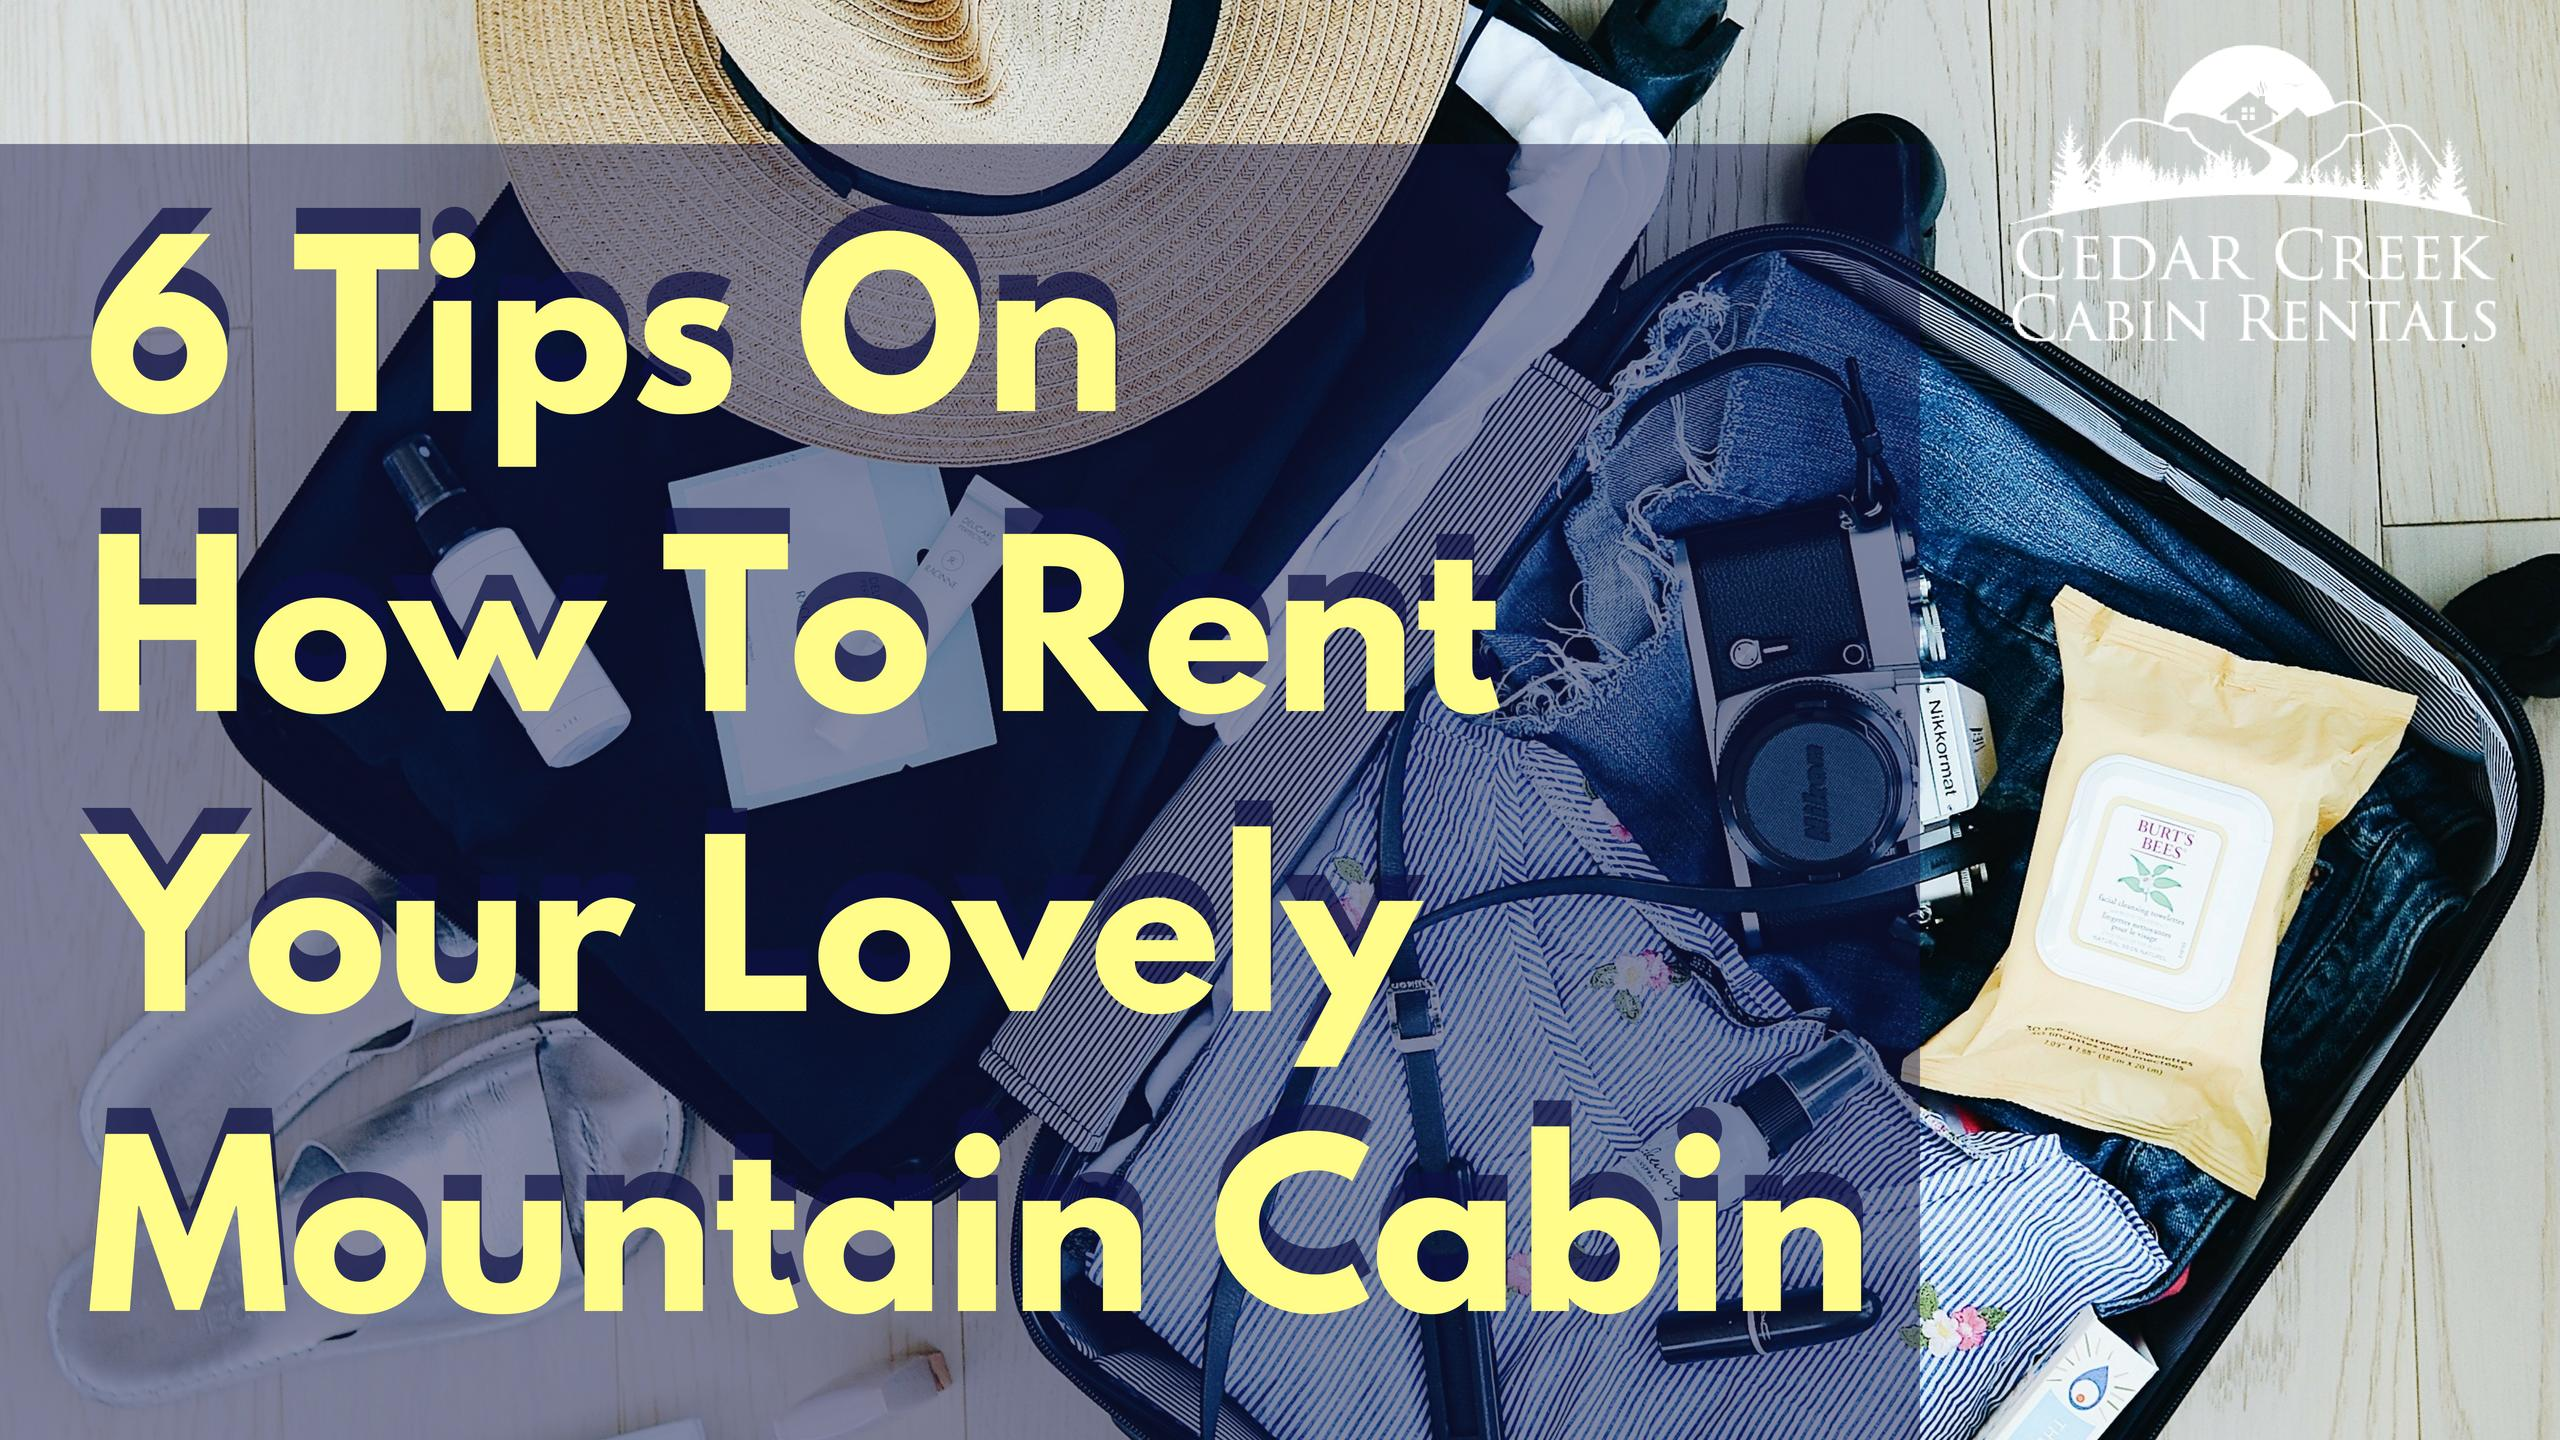 6-tips-to-rent-your-lovely-cabin-Large-youtube-Blog